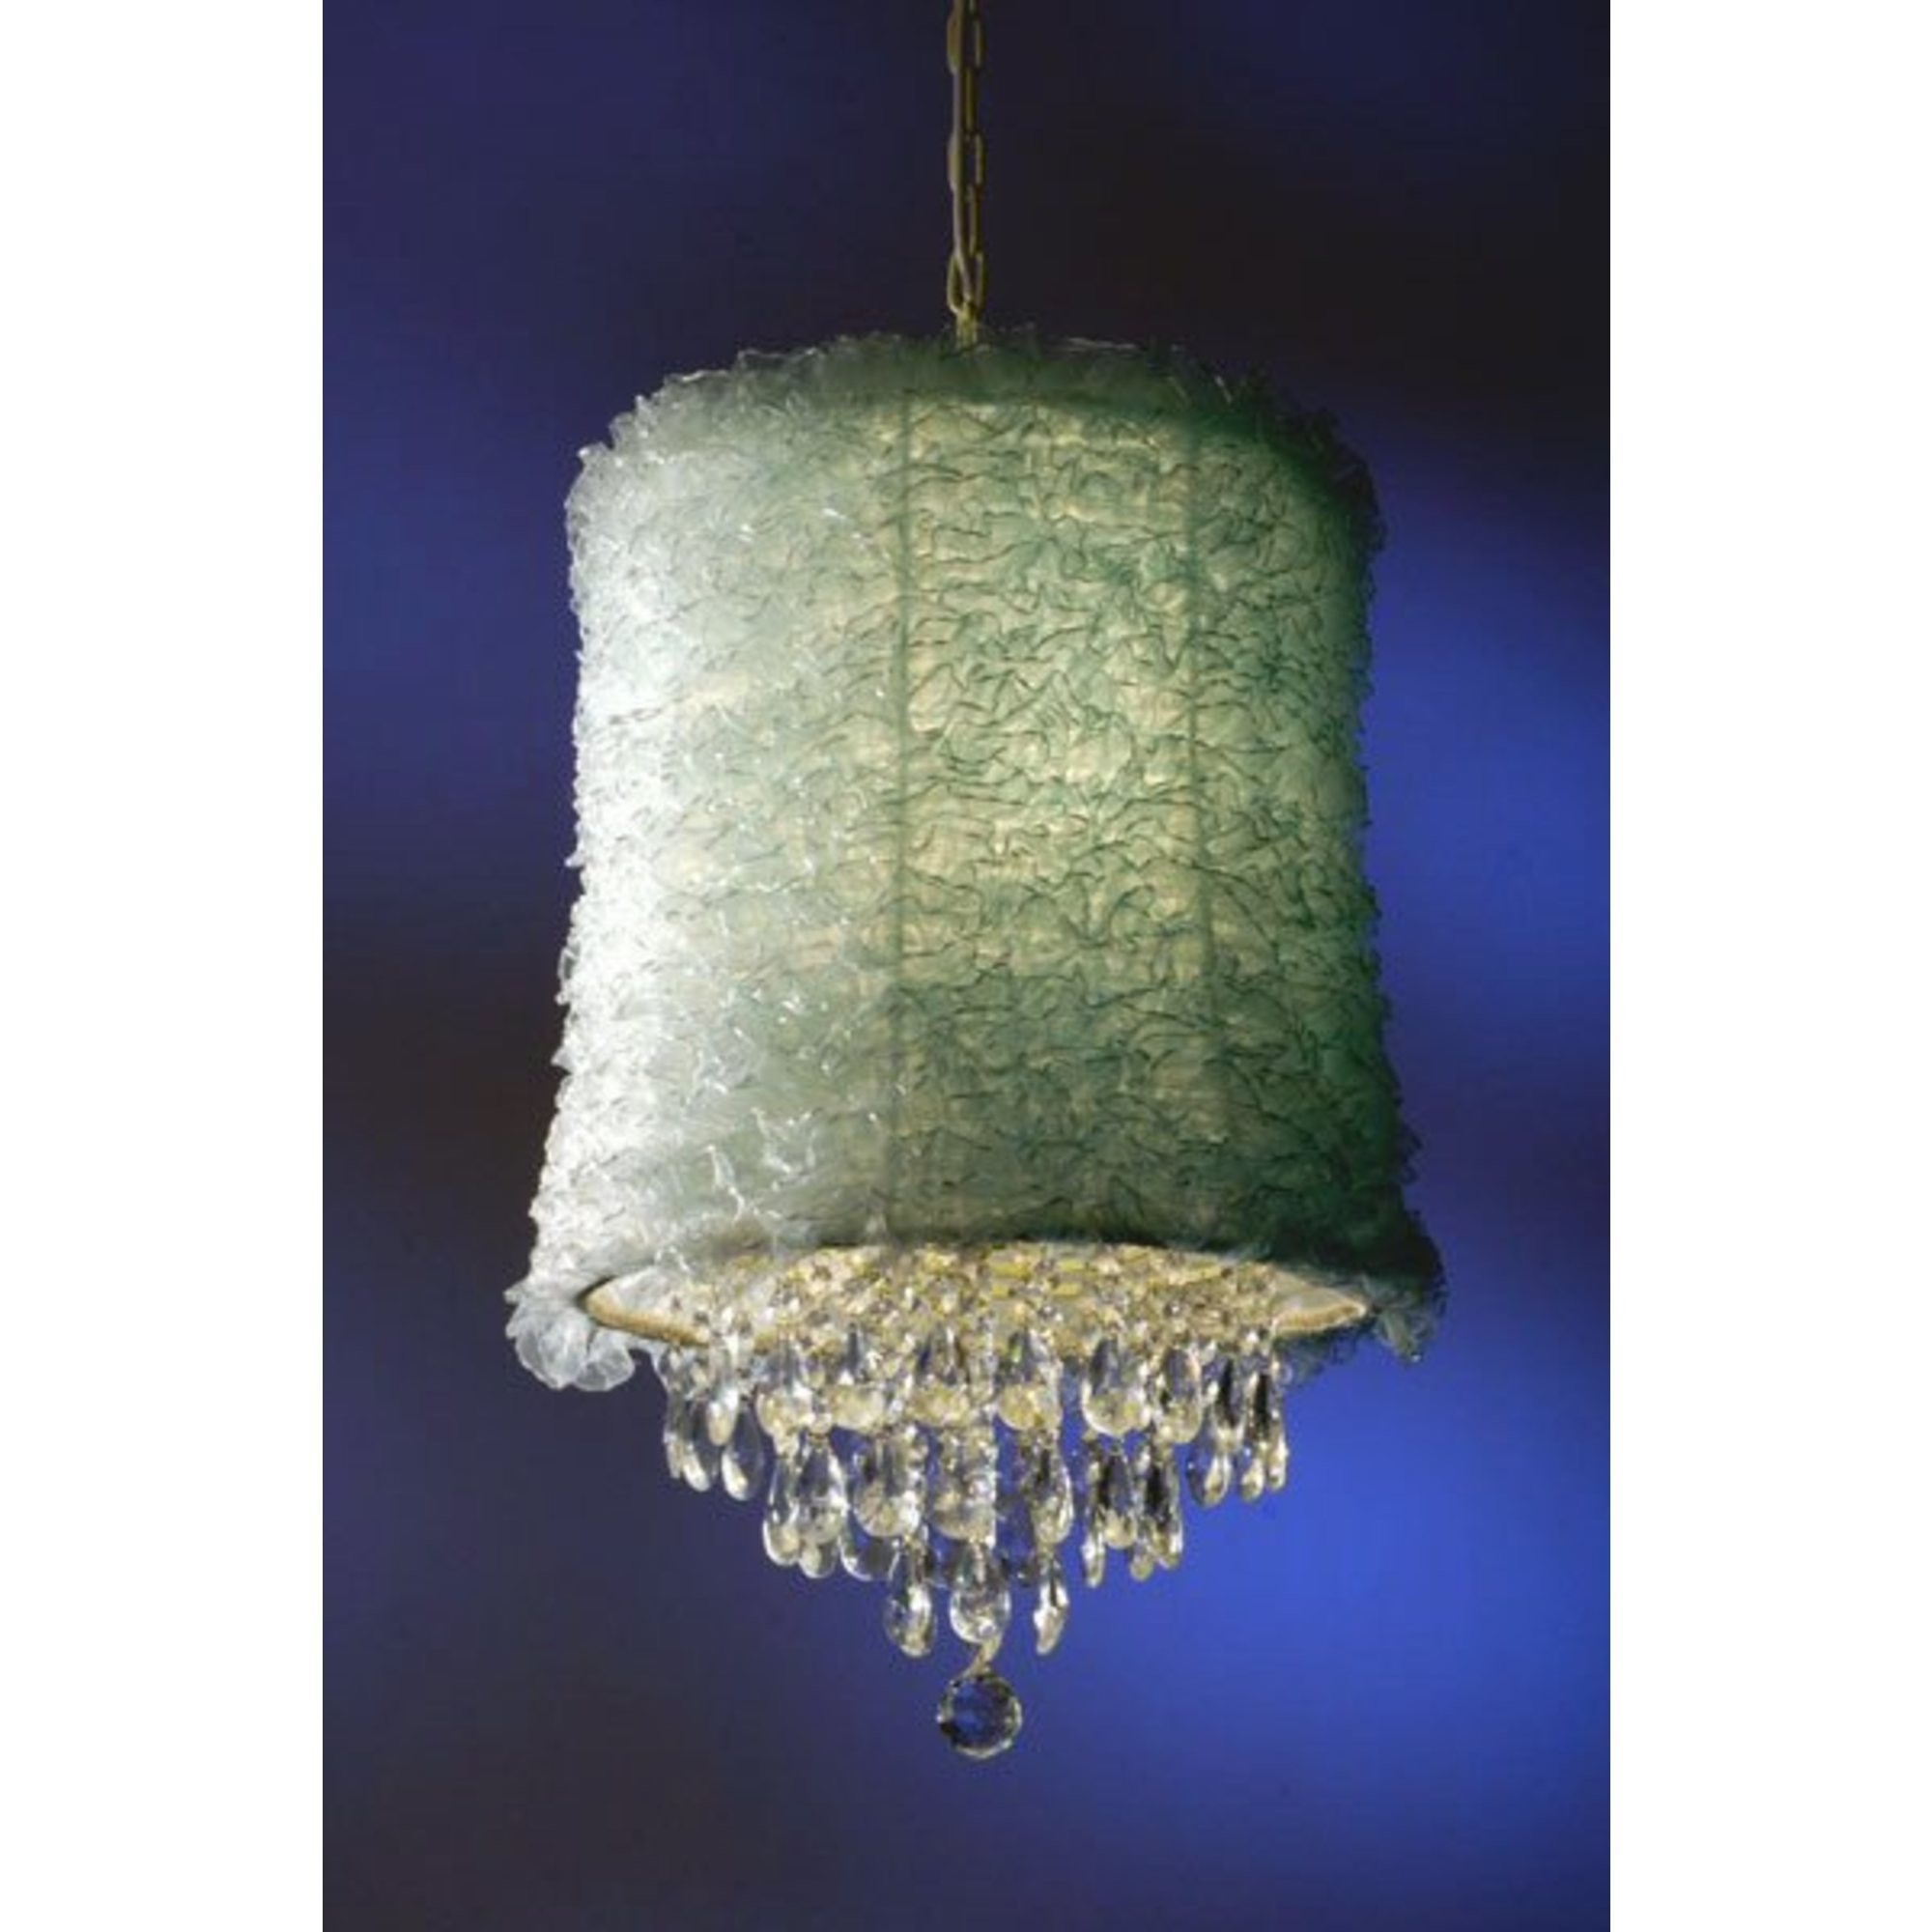 Shabby Chic Ruffle Shade 3 Light Chandelier - Cream and Blue